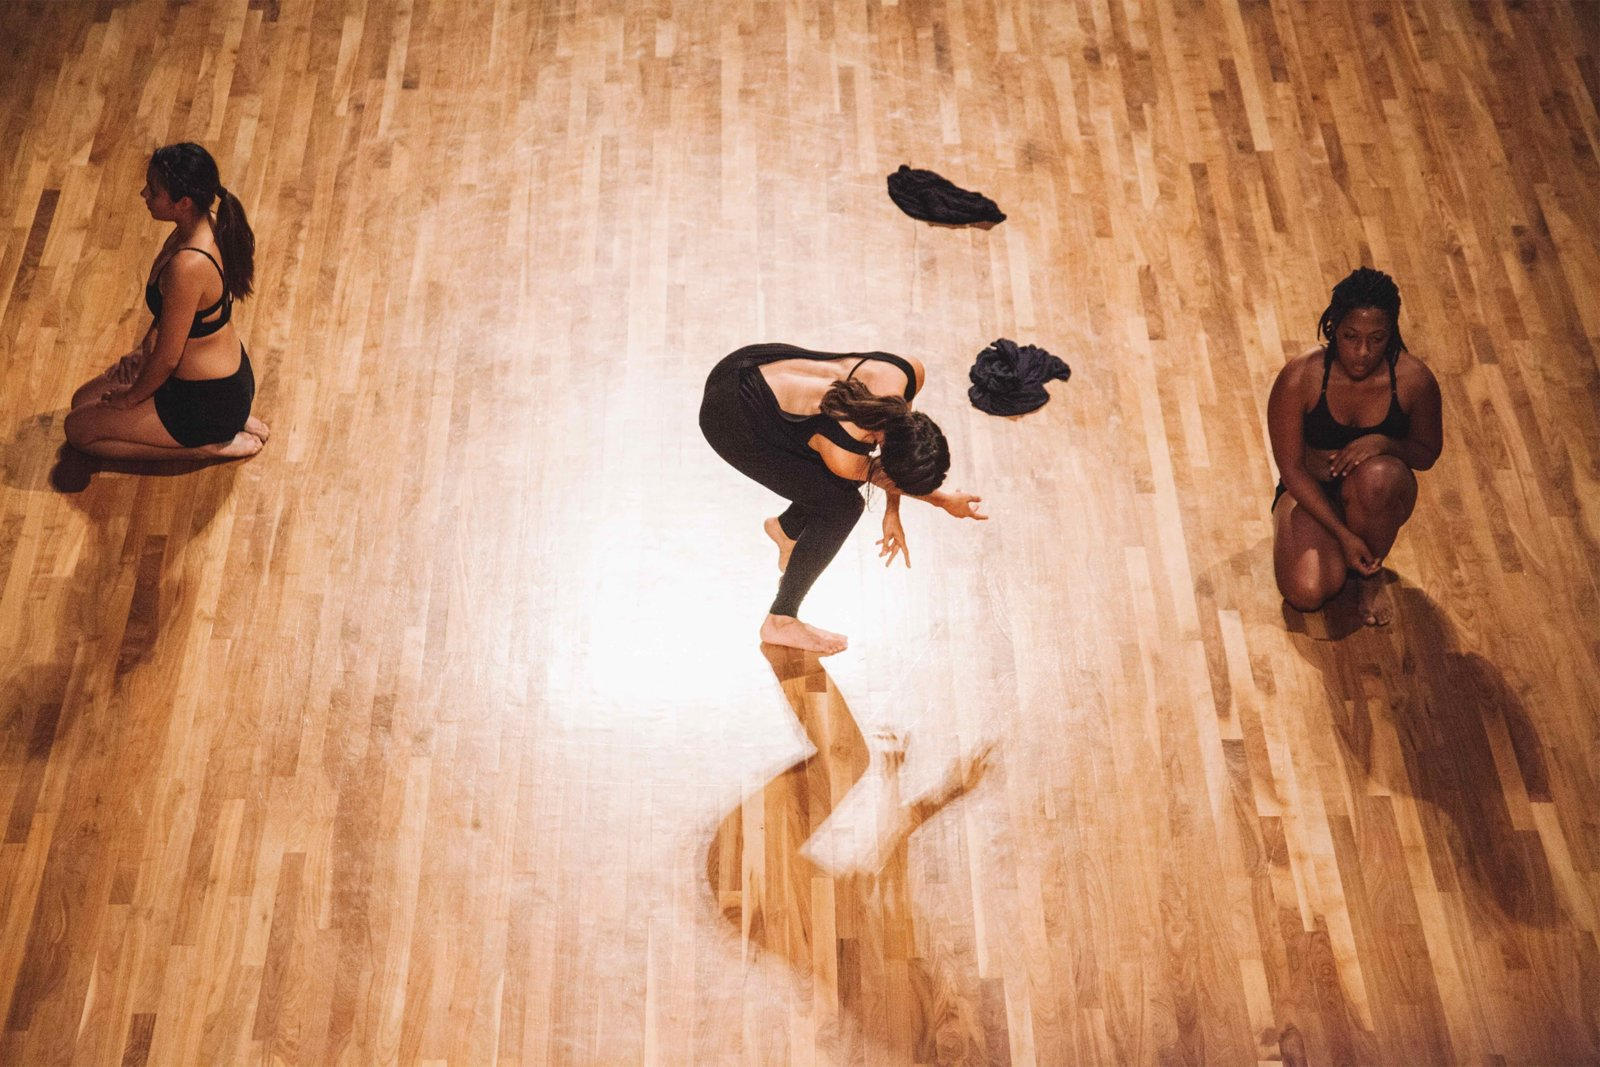 Tanya Lukin Linklater, the the, 2014–2016, site-specific performance with 3 dancers. Performance documentation, Culver Centre, LA, USA, 2015